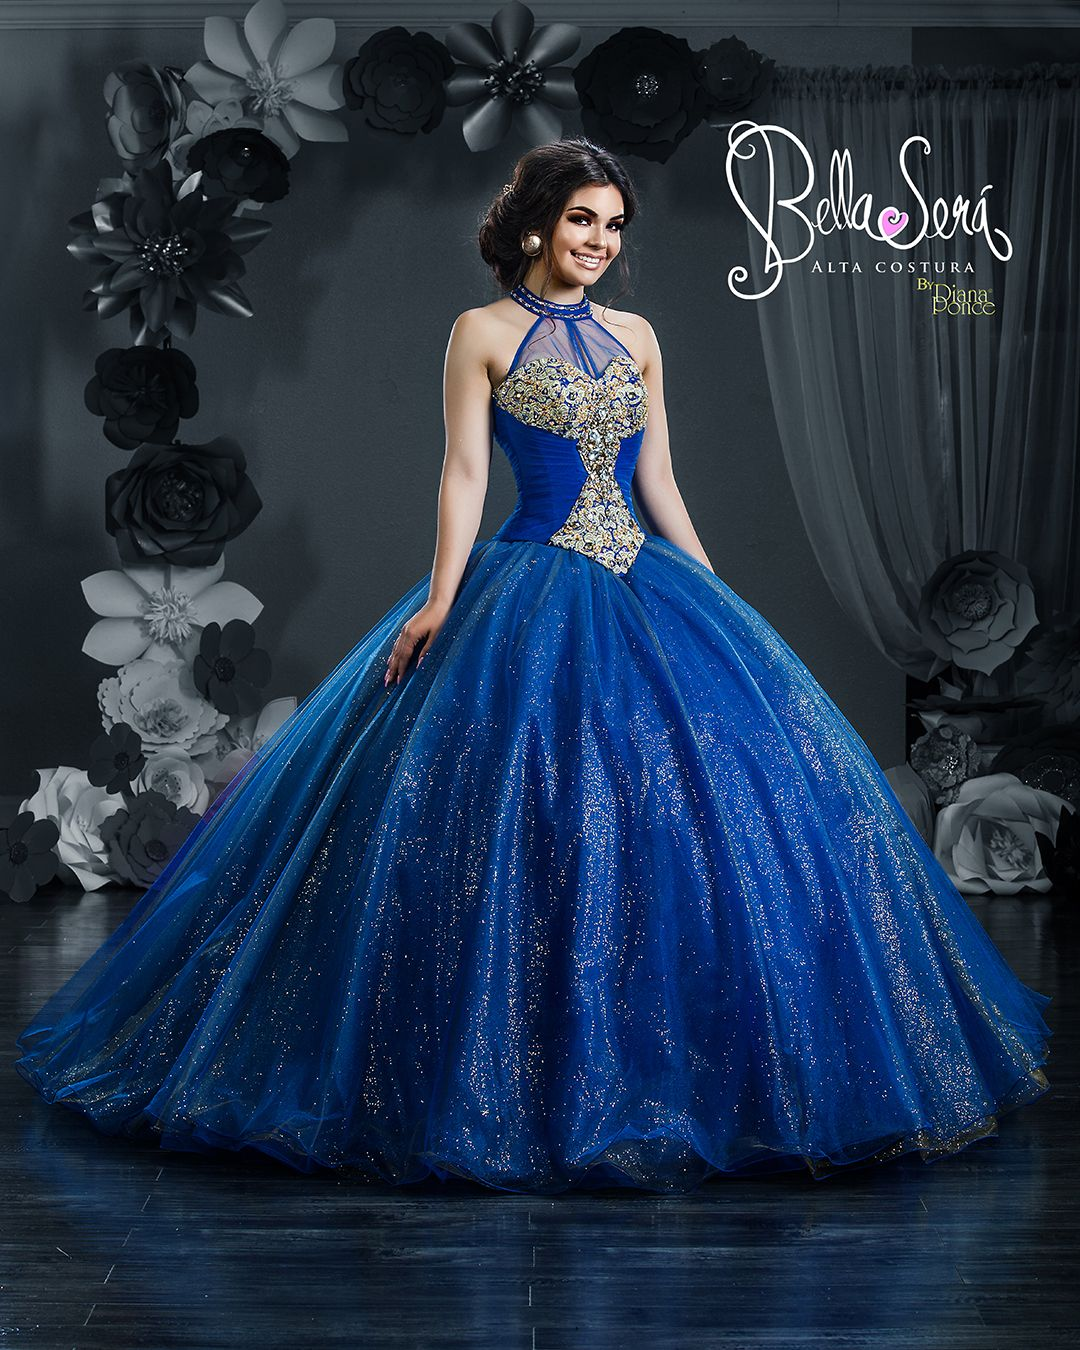 Charro Quinceanera Everything You Need For A Charro Themed Quince Quince Dresses Quince Dresses Mexican Charro Quinceanera Dresses [ 1620 x 1080 Pixel ]